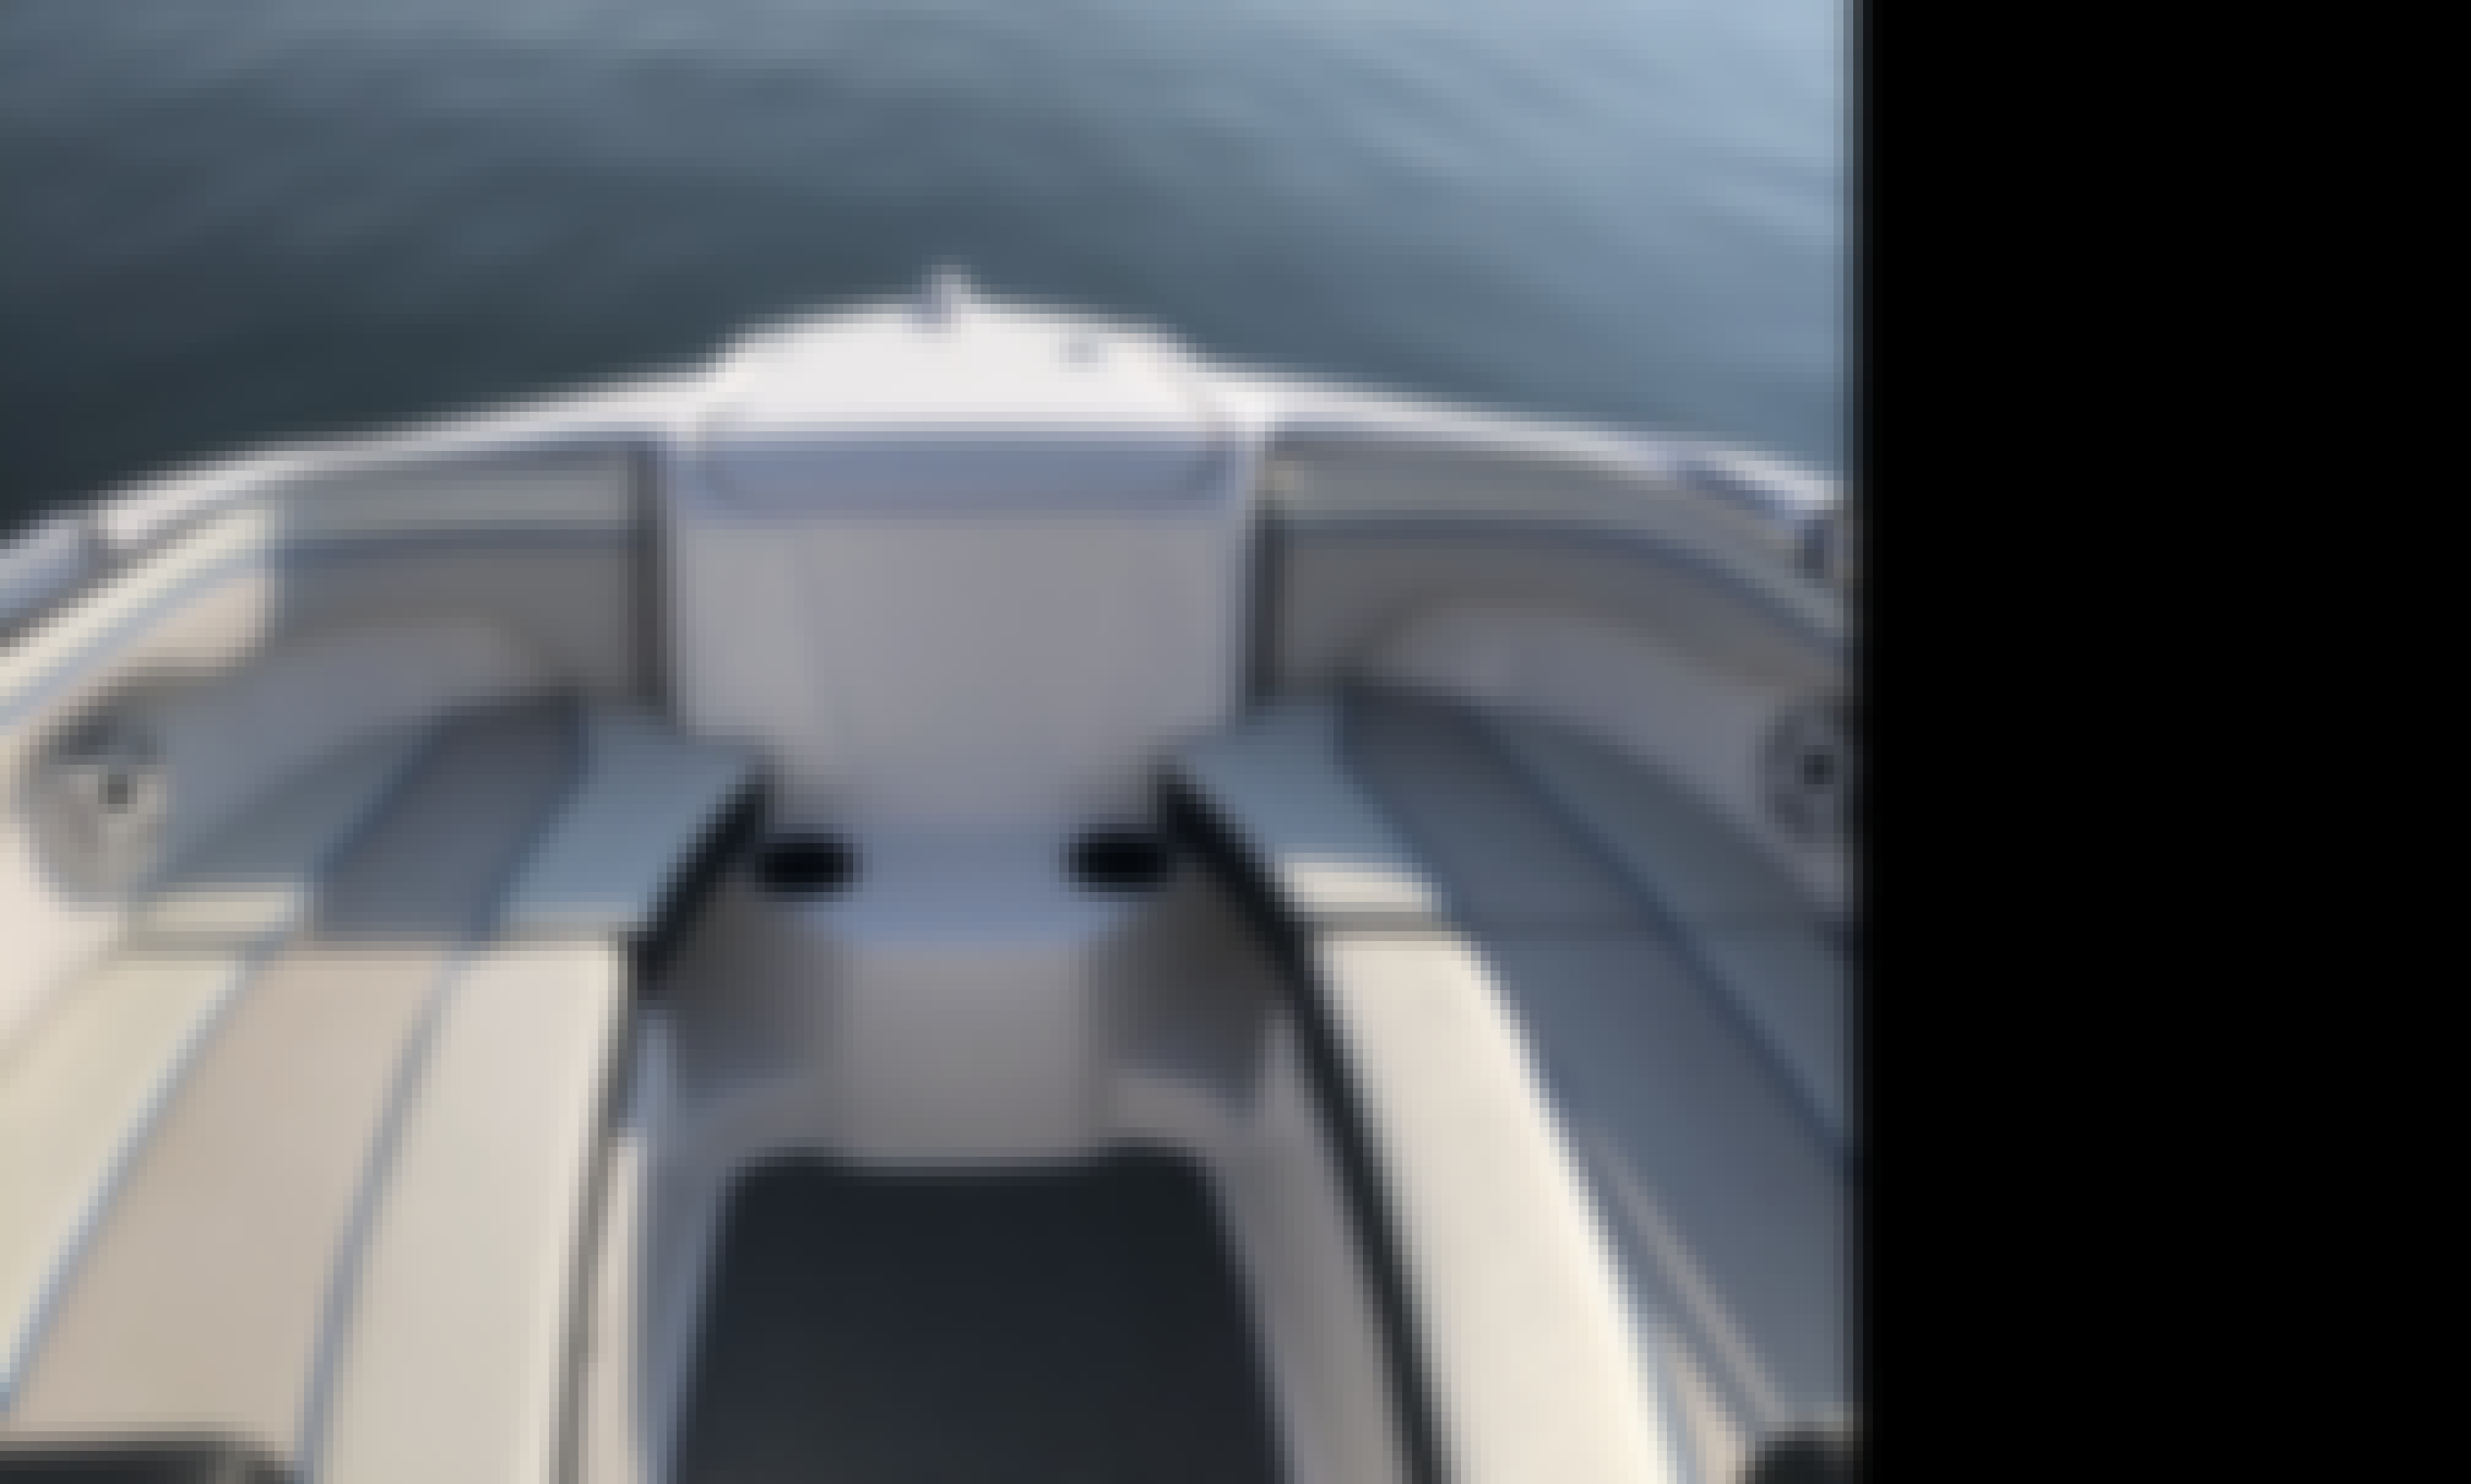 2019 Yamaha AR210 Wakeboat in Park City